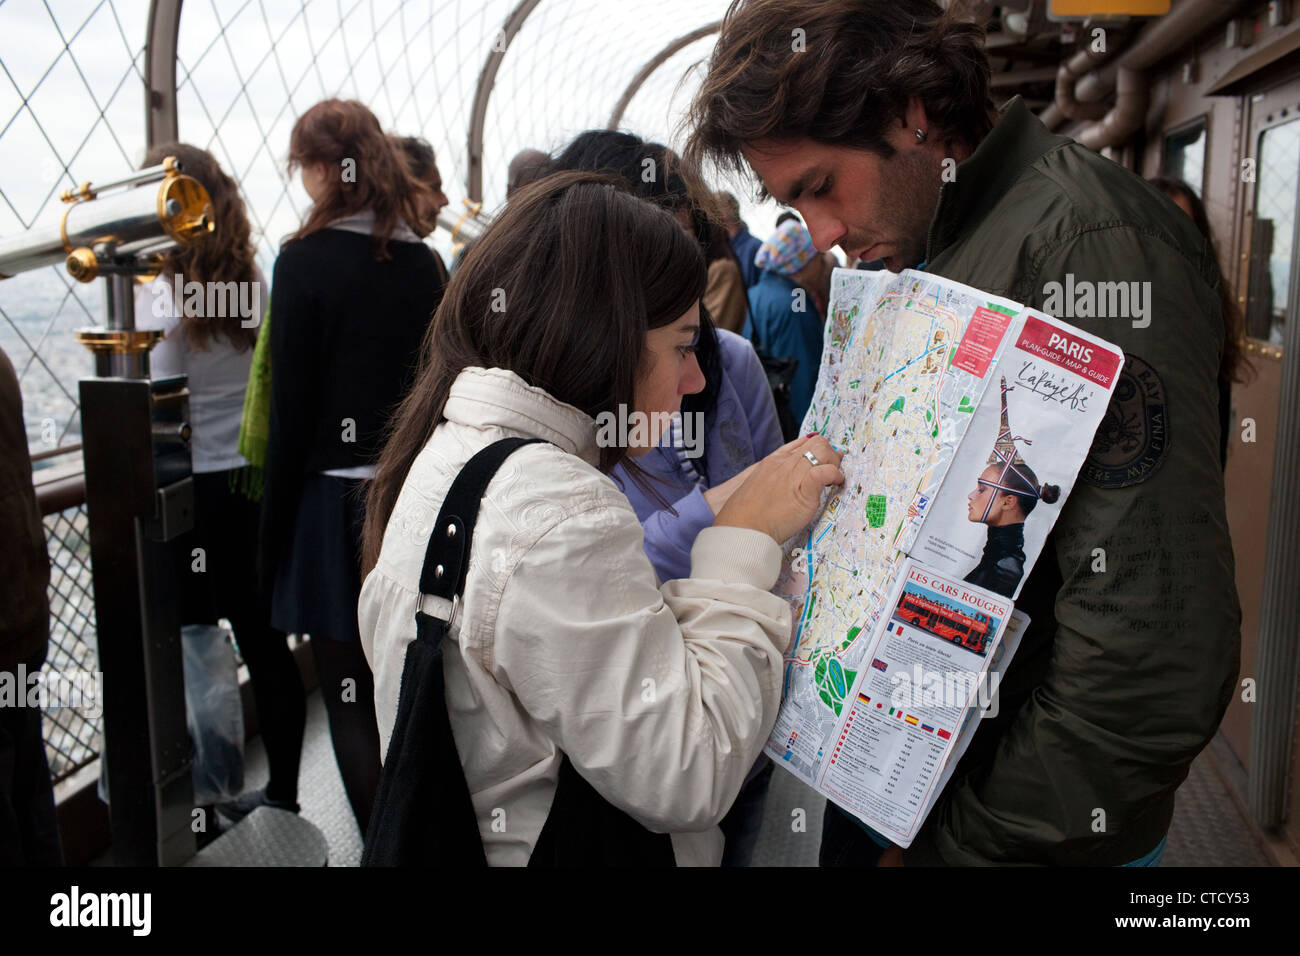 Tourists with a map of Paris on the second floor Eiffel Tower in Paris, France. Stock Photo